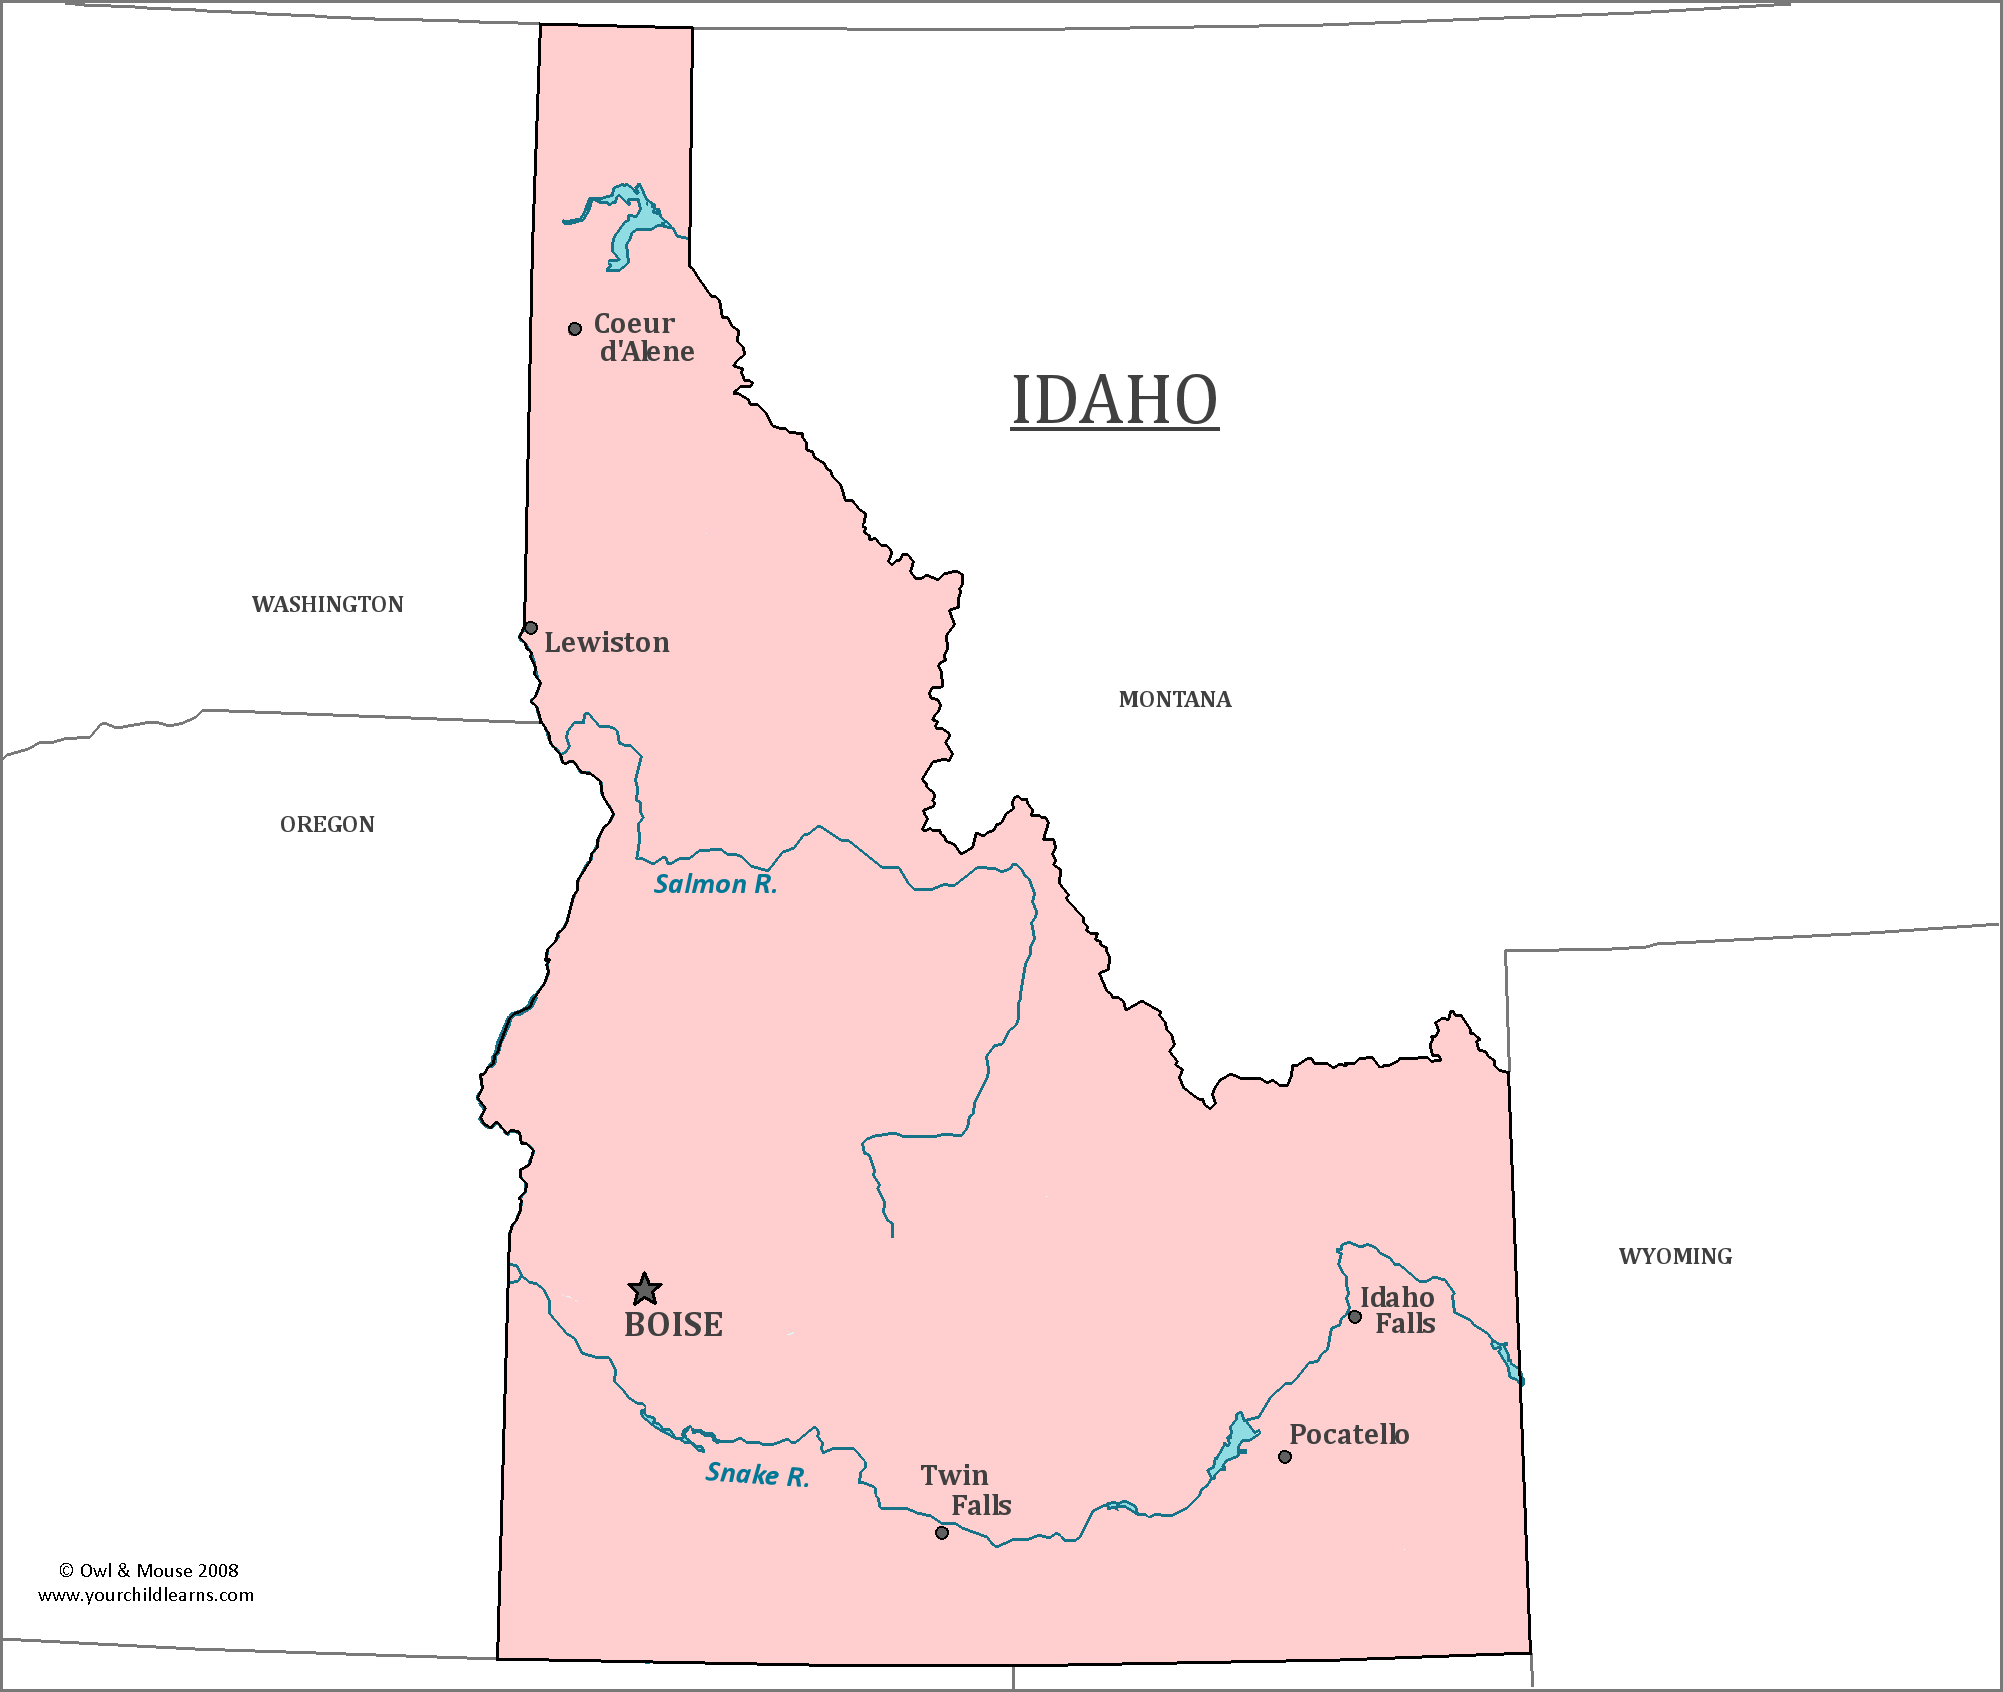 Idaho State Map Map Of Idaho And Information About The State - State of idaho map